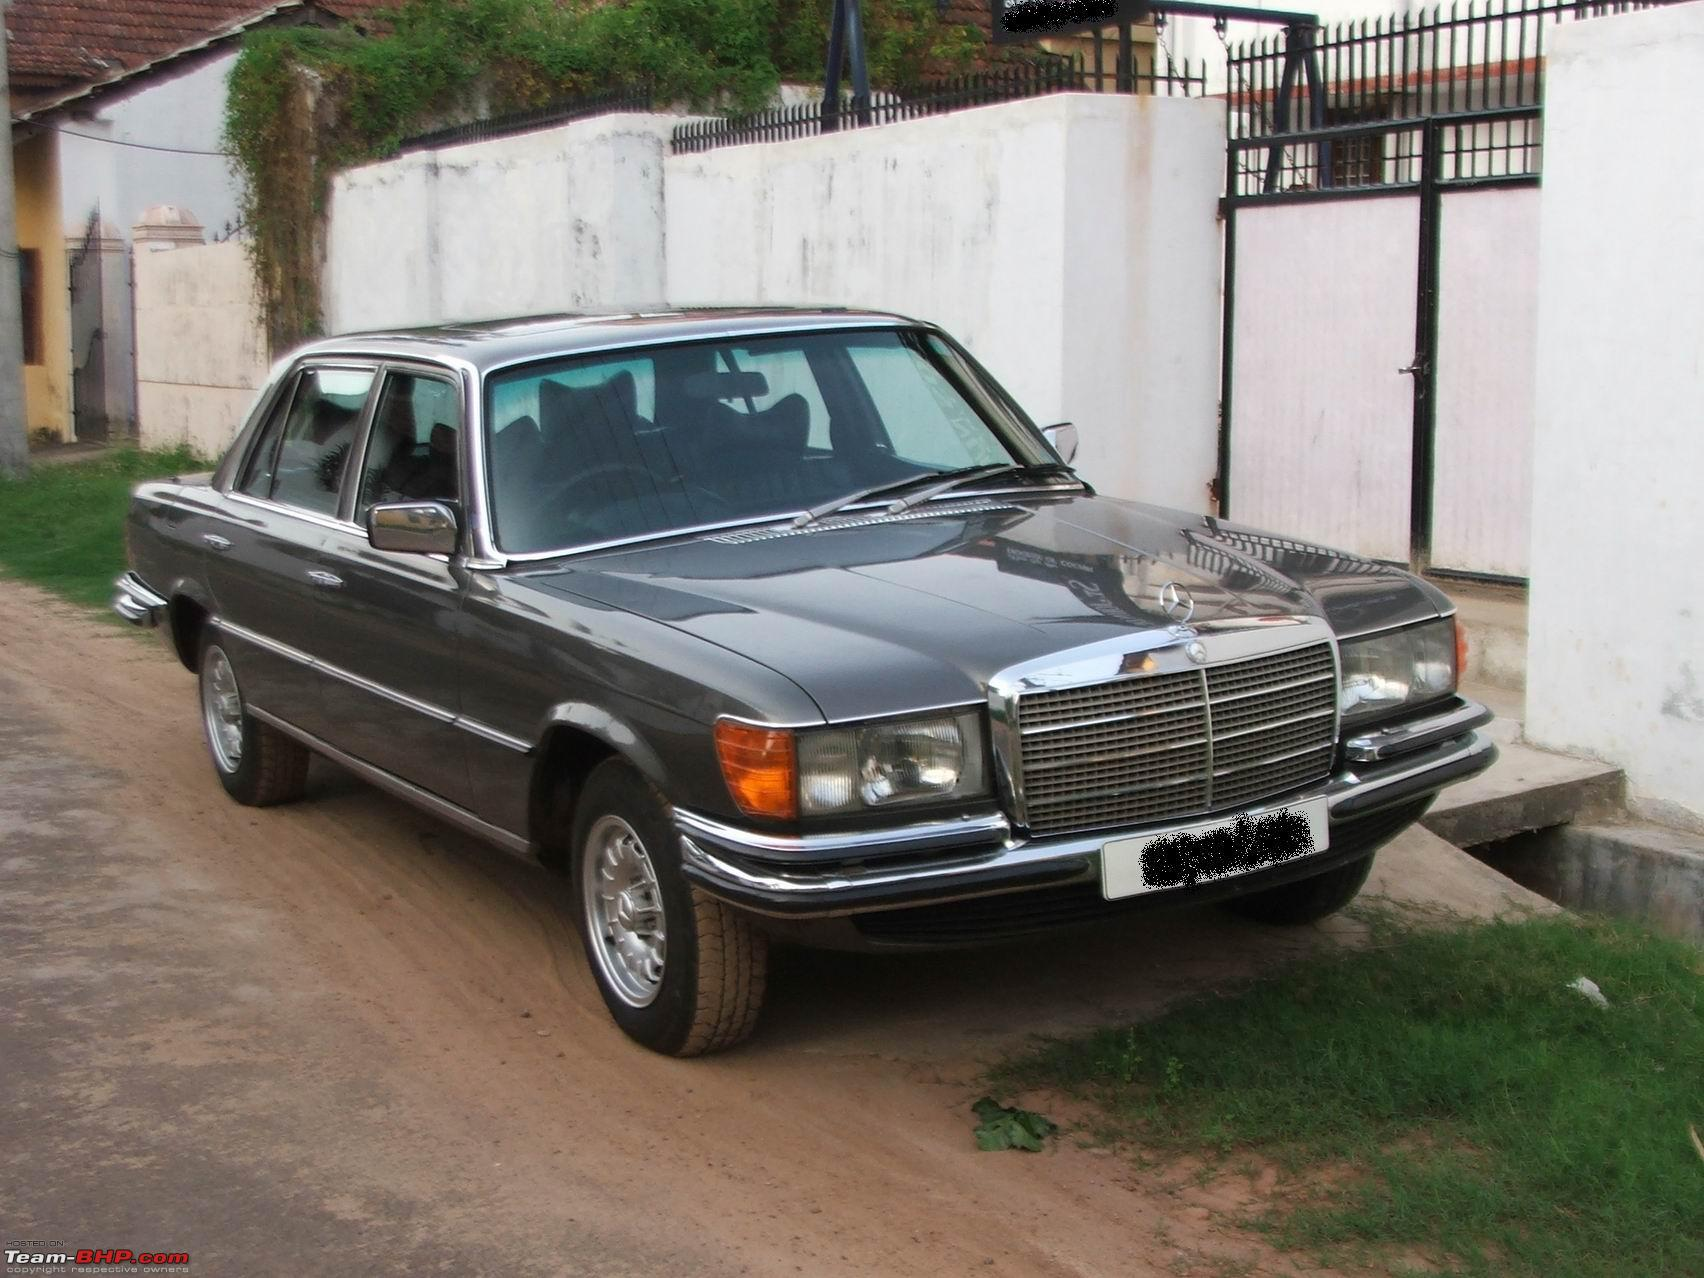 Vintage Classic Mercedes Benz Cars In India Page 9 Team Bhp